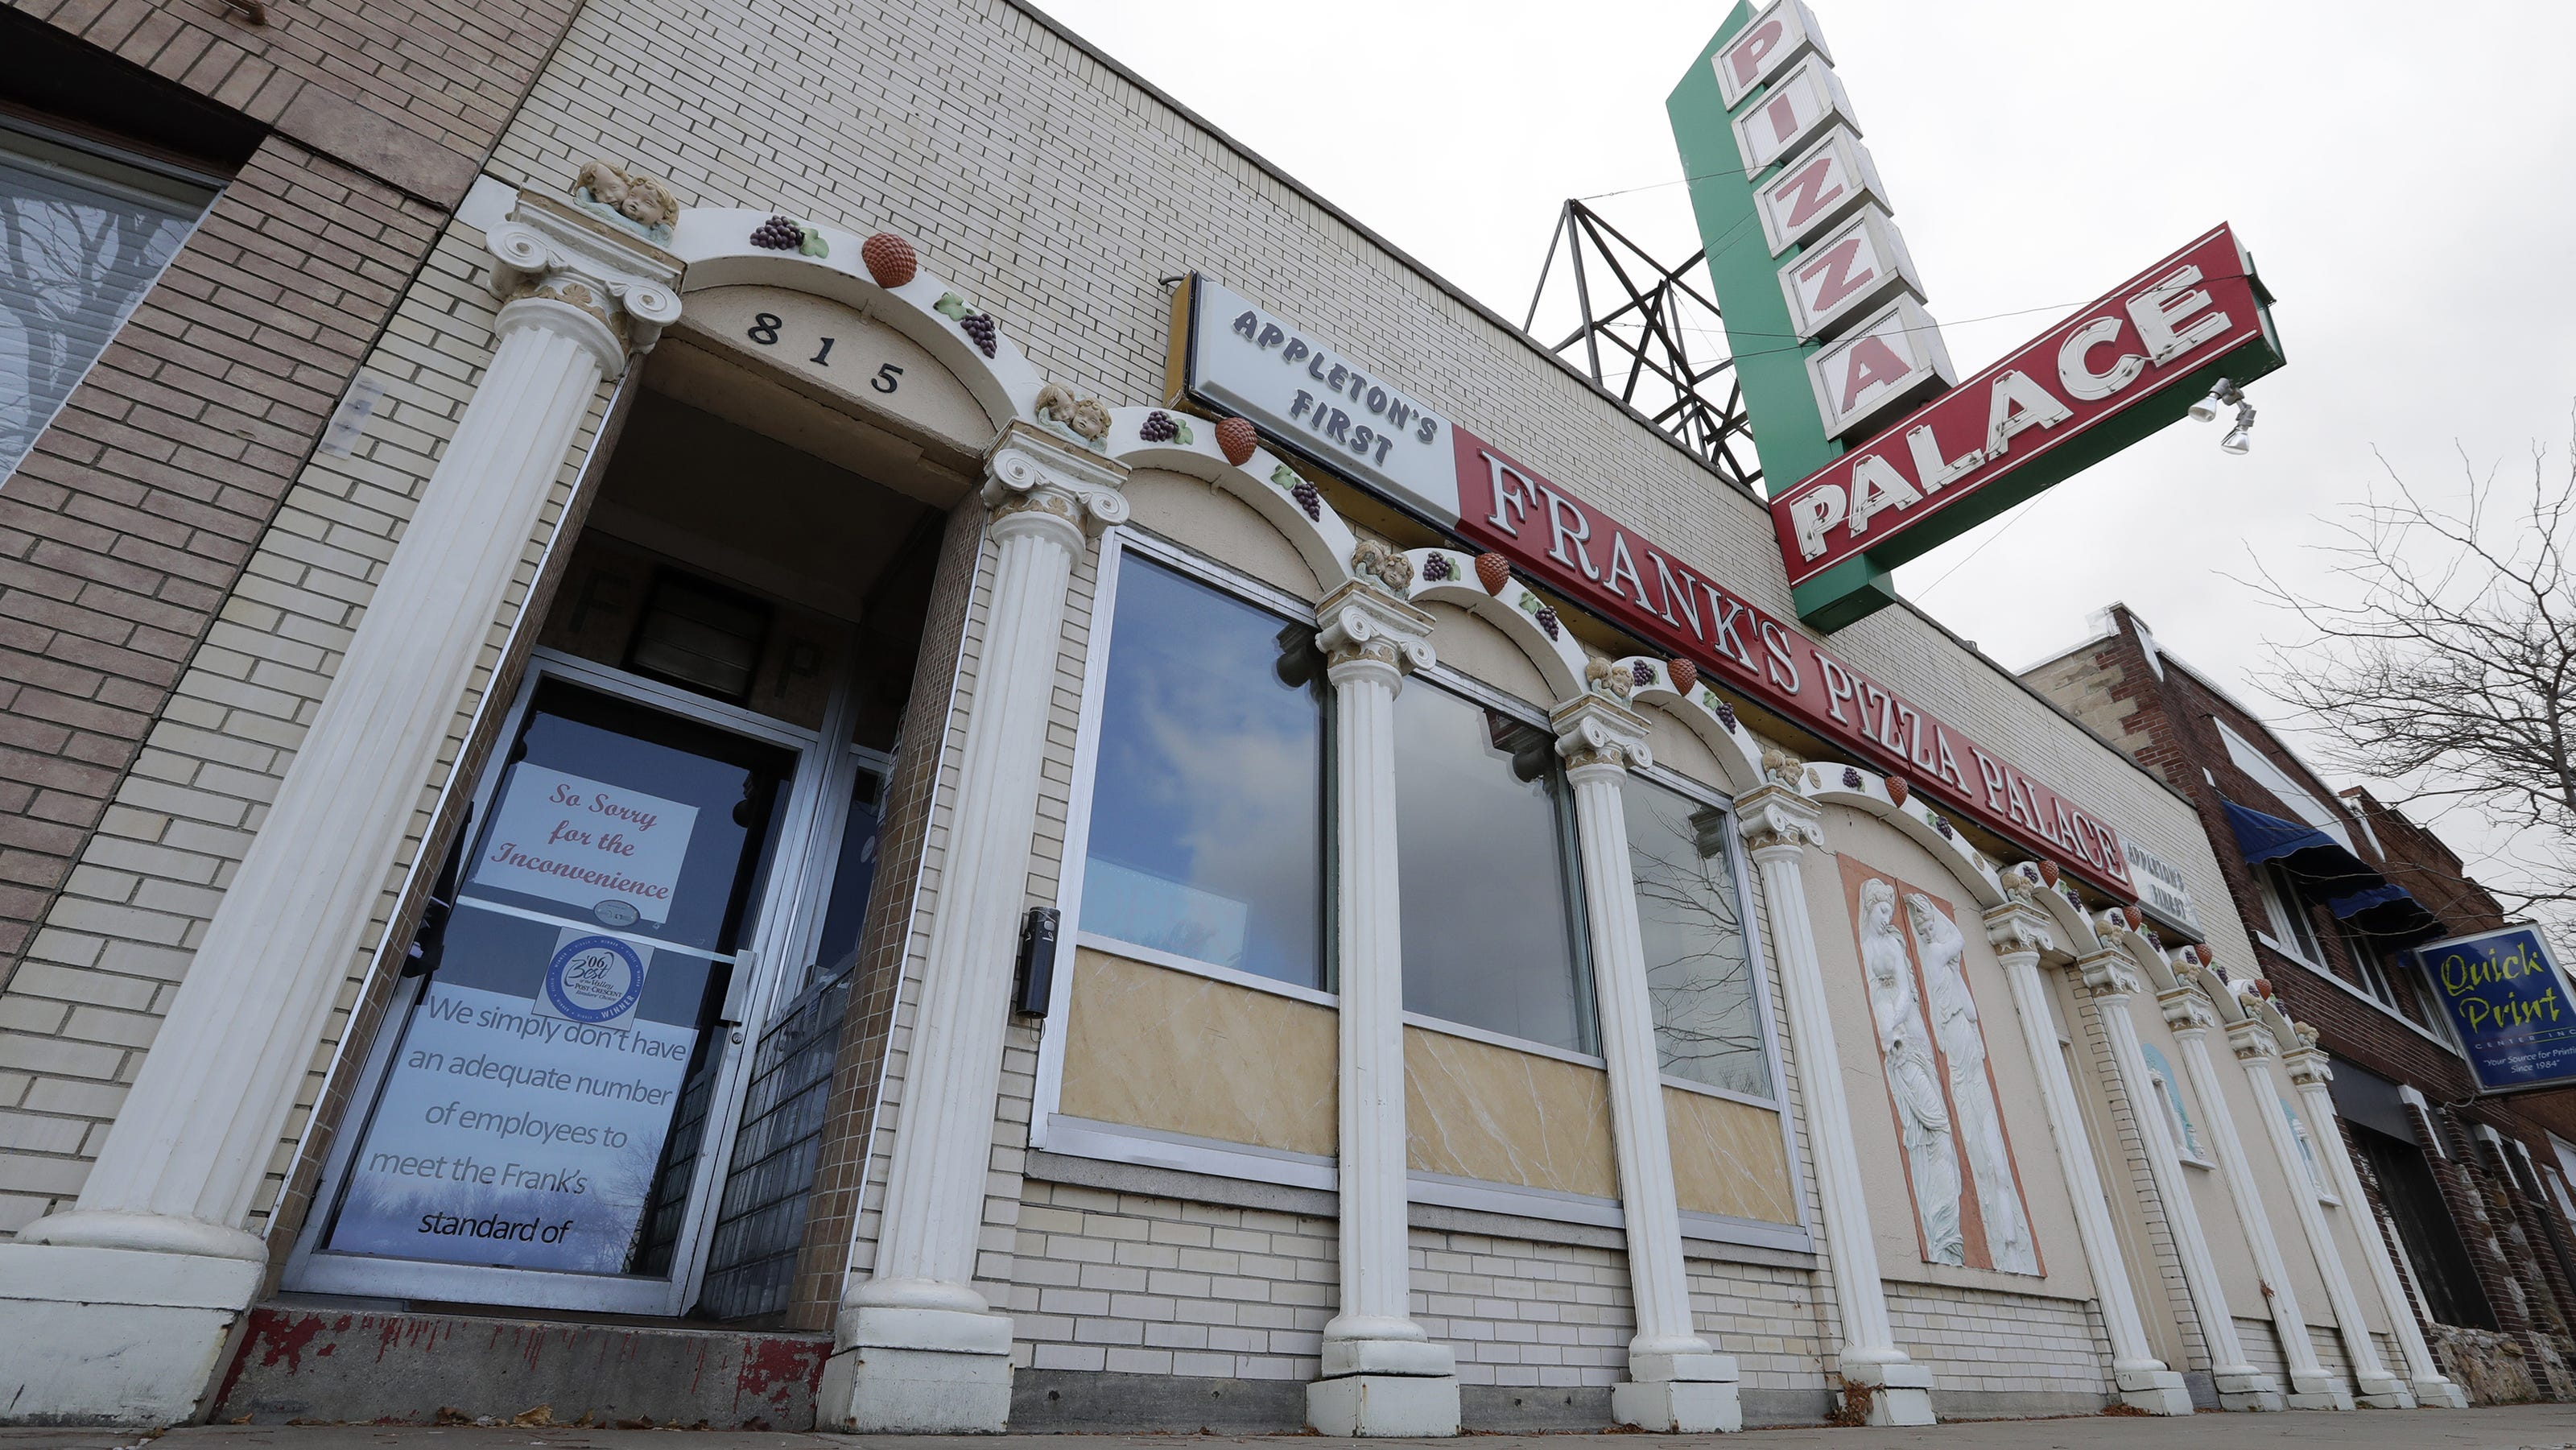 Post Crescent Halloween 2020 Appleton's first pizzeria, Frank's Pizza Palace, to reopen this spring